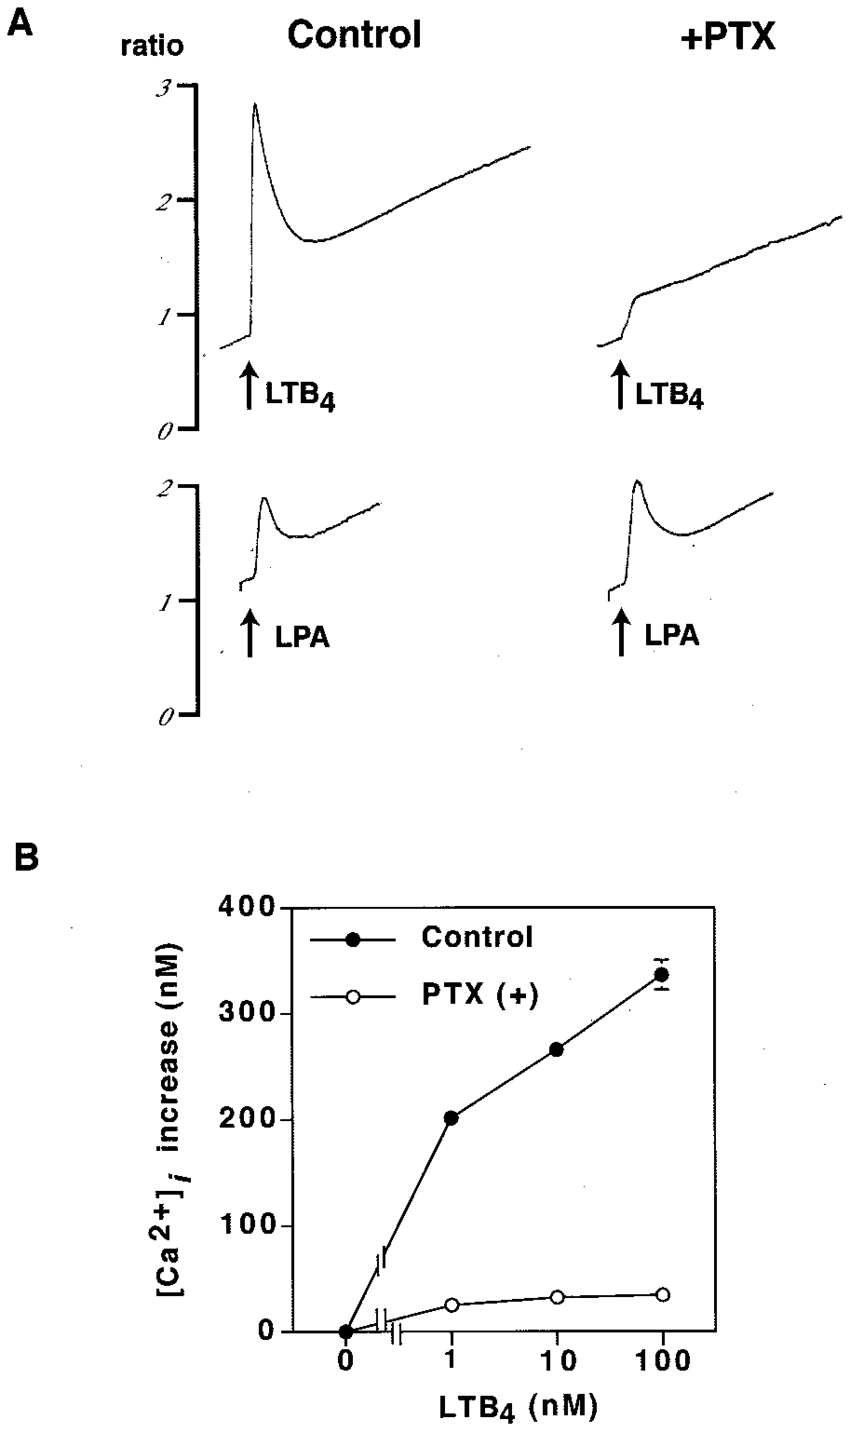 medium resolution of inhibition of ltb 4 induced calcium mobilization by pertussis toxin cells suspended in a modified hepes tyrode s bsa buffer containing 1 mm cacl 2 were